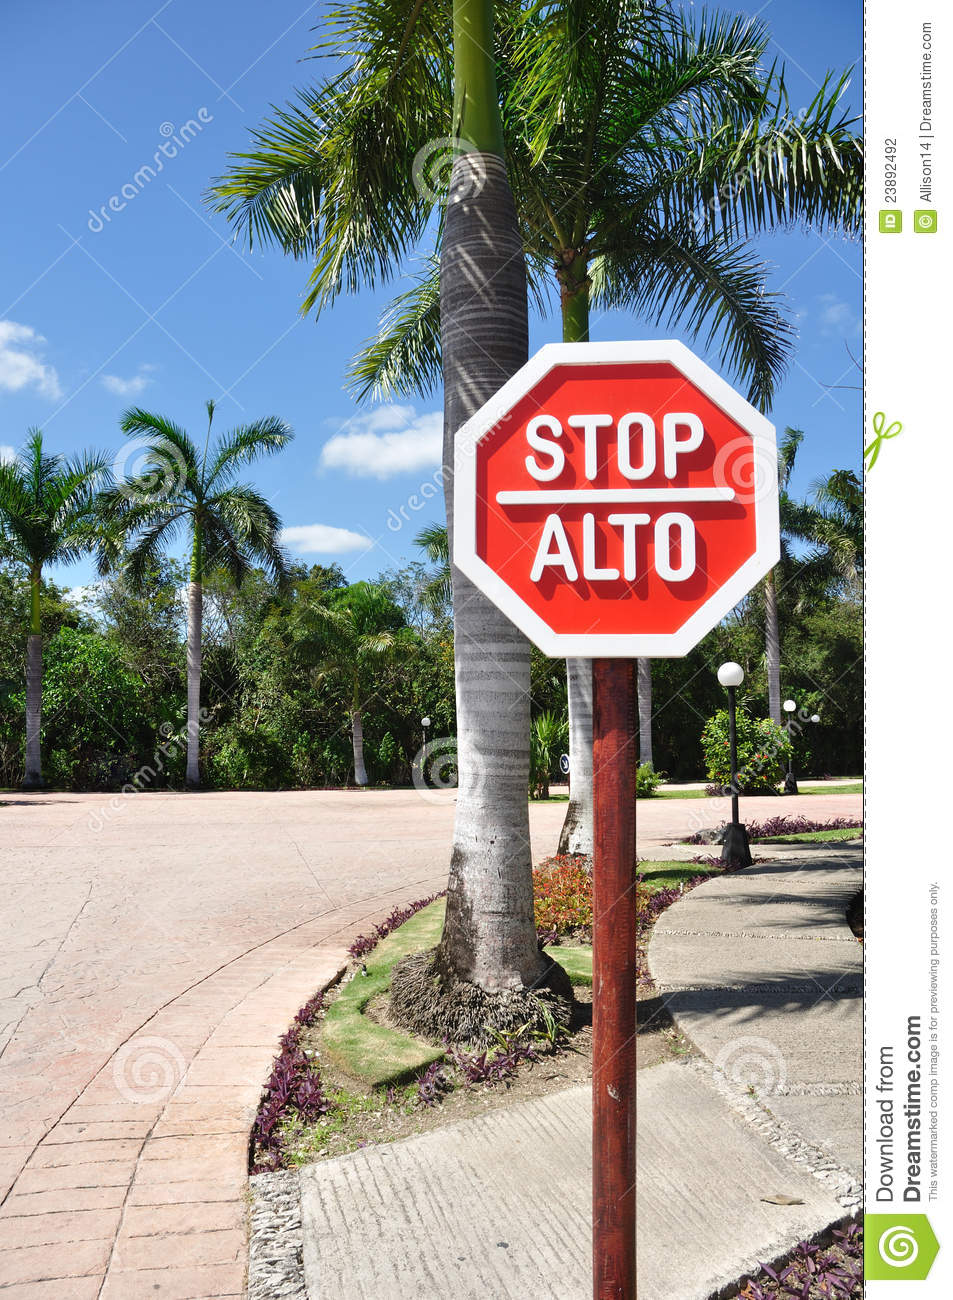 Stop Sign in Spanish and English